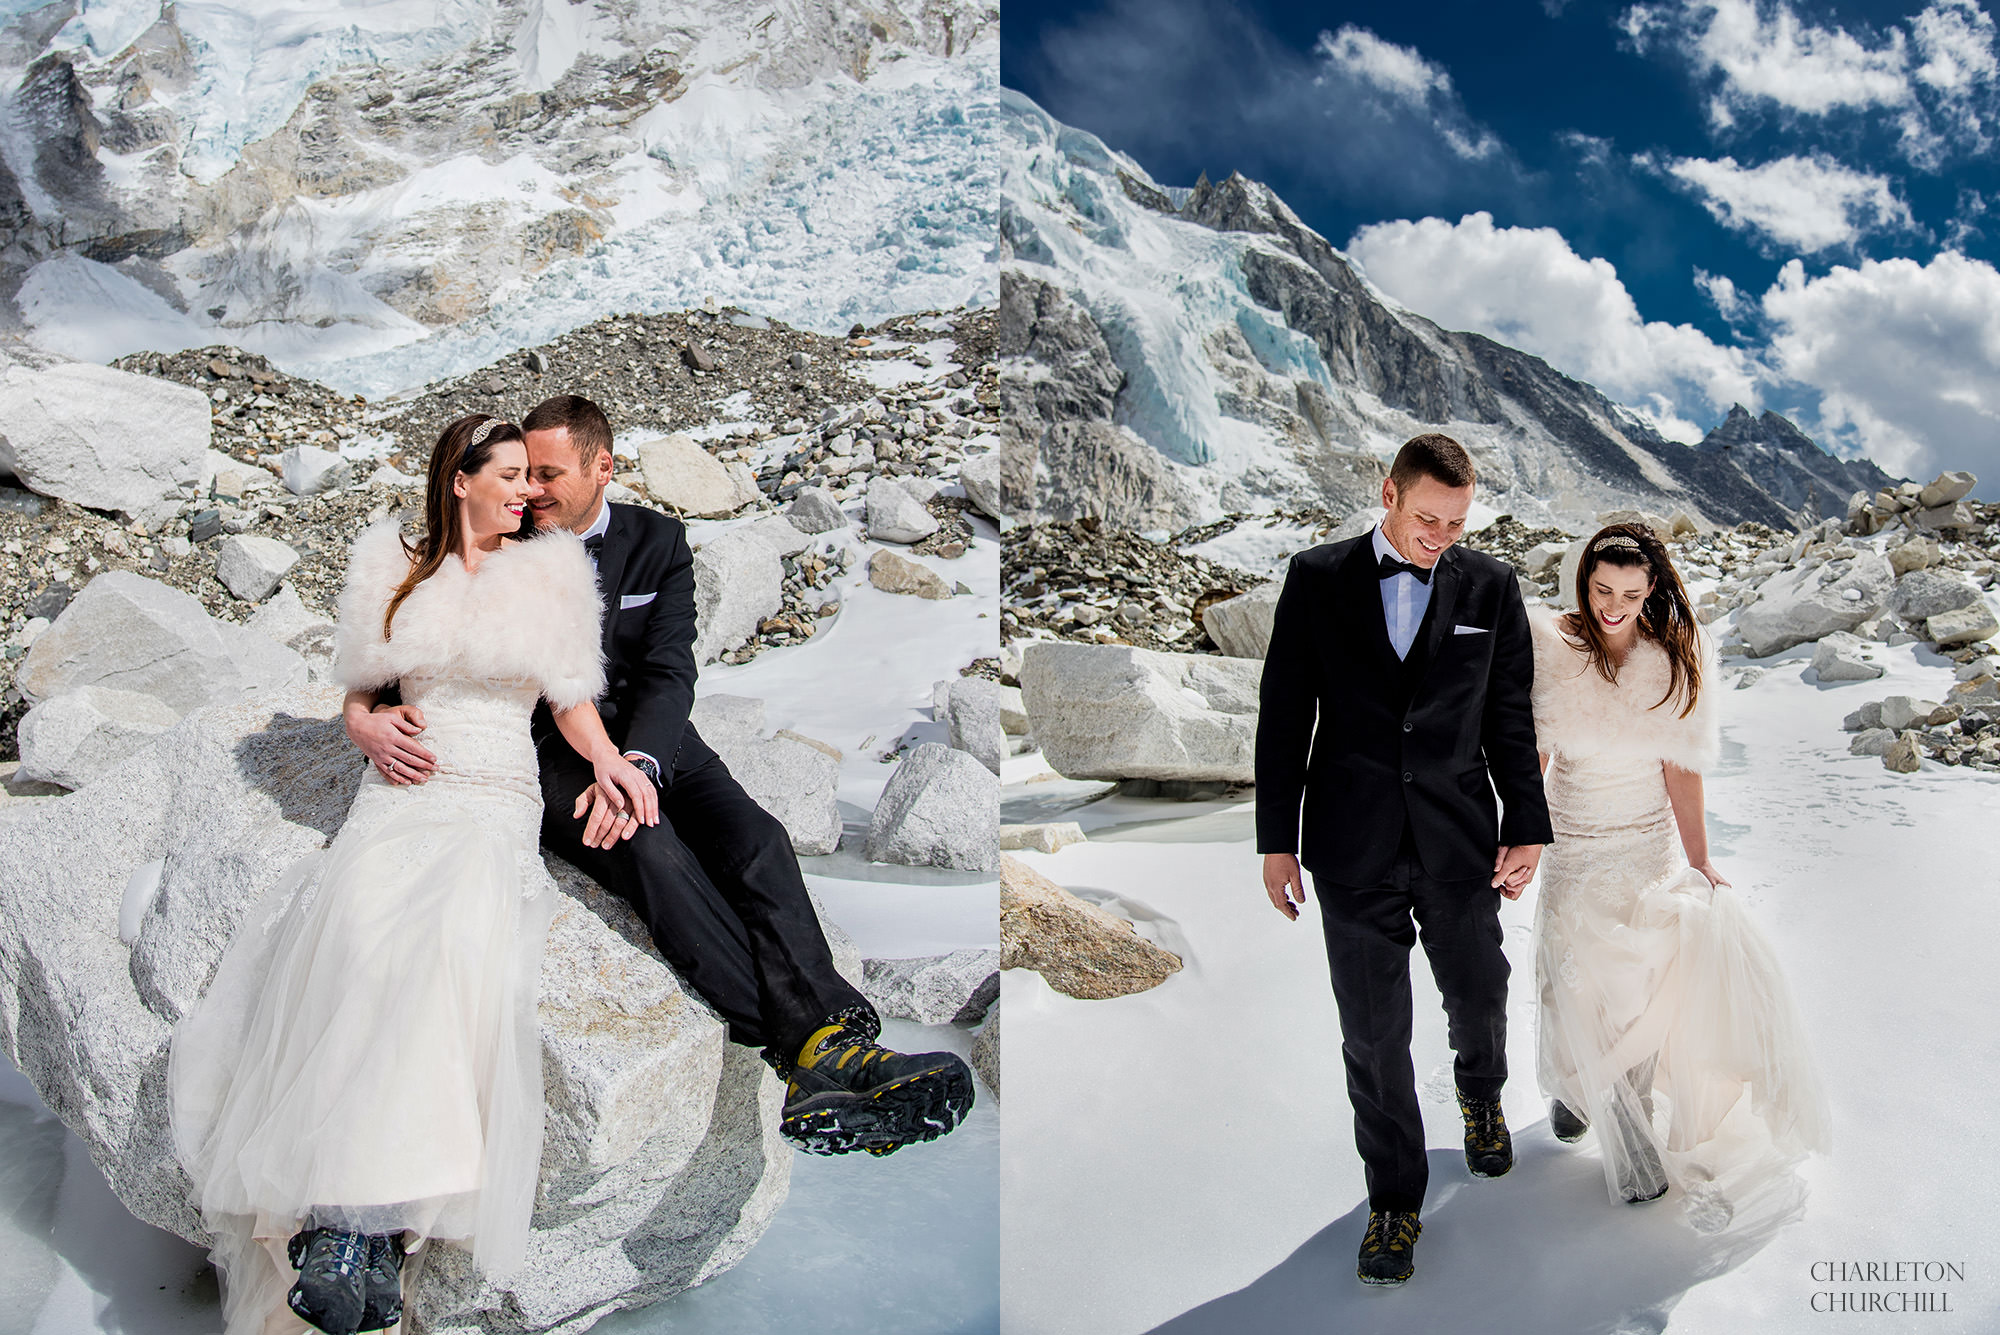 adventure wedding photos on mt everest on the icy glacier